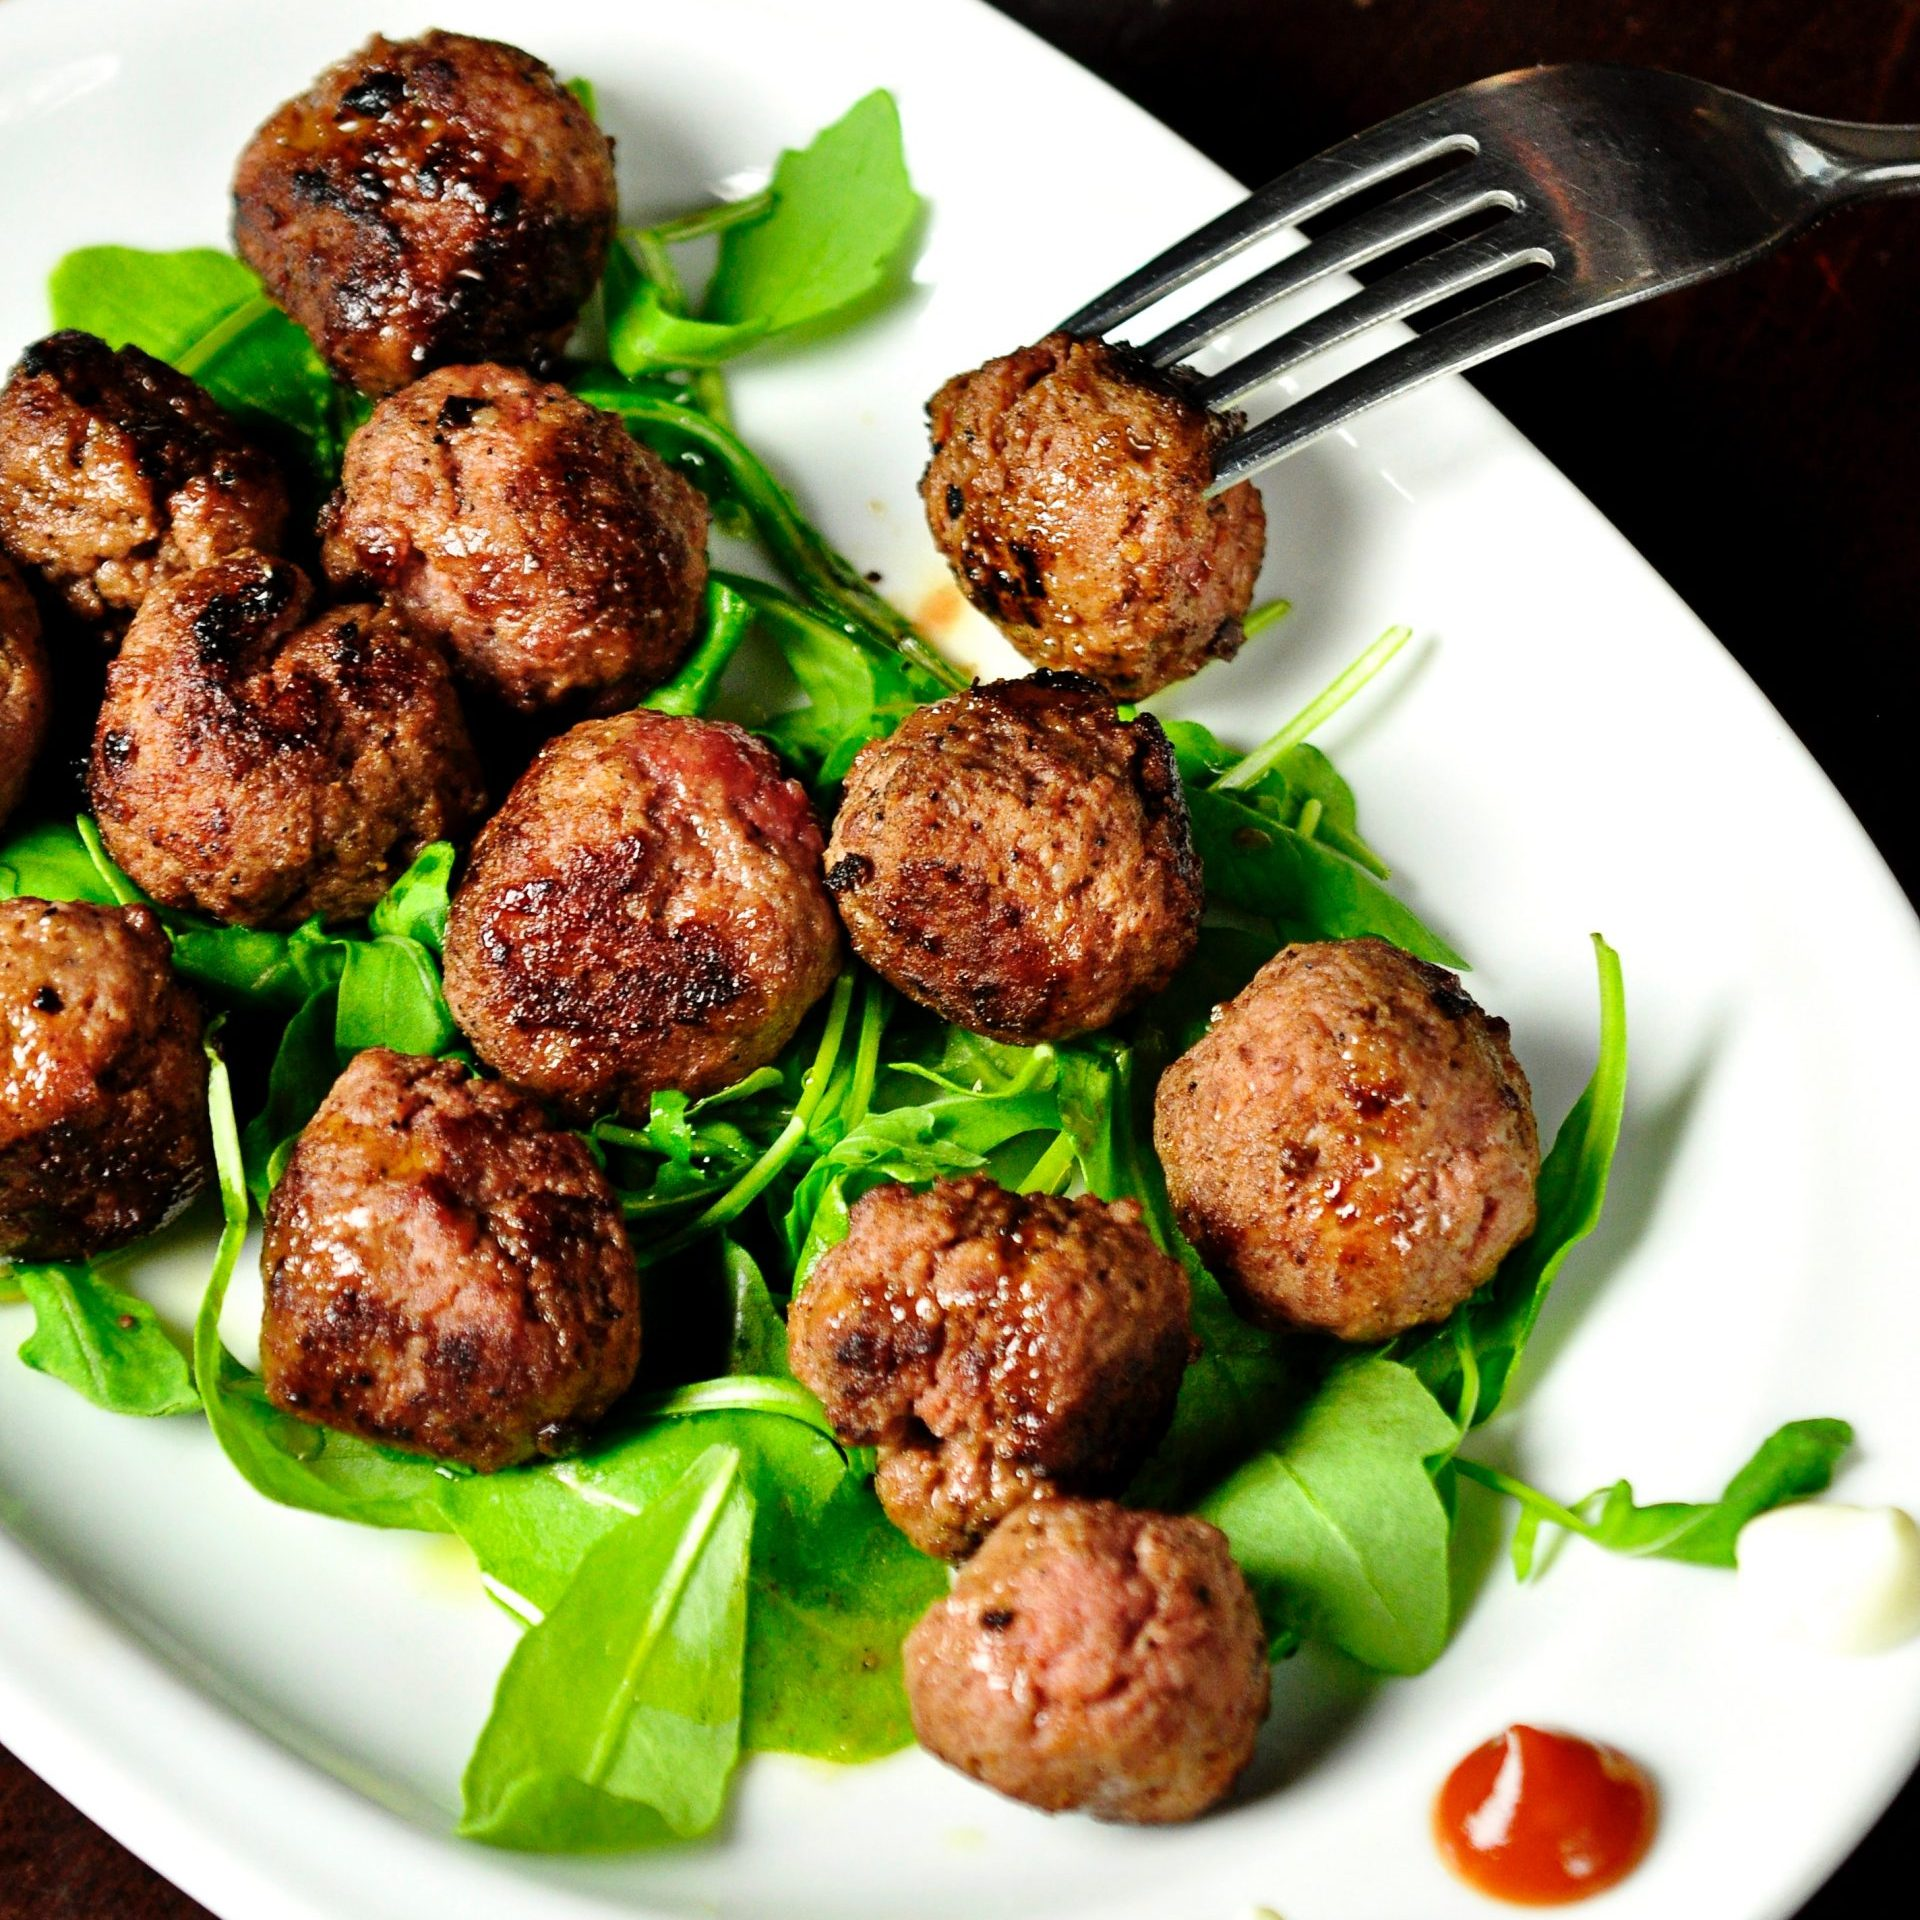 Meatballs with some salad leafs on a white board. Someone pulling a fork in one meatball